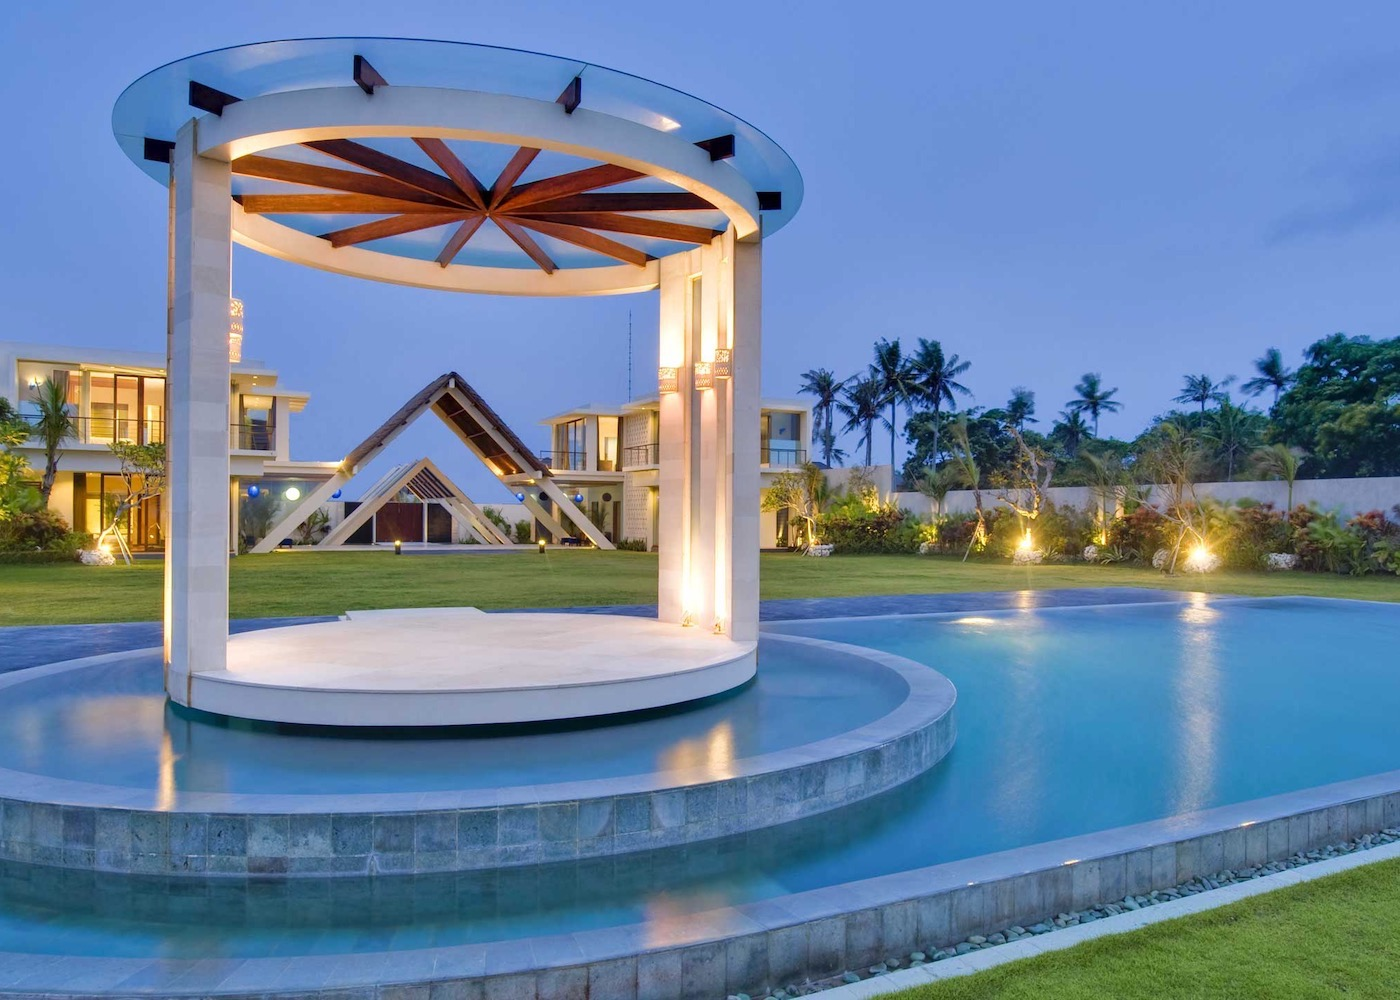 The Phalosa - one of the most beautiful wedding villas in Bali